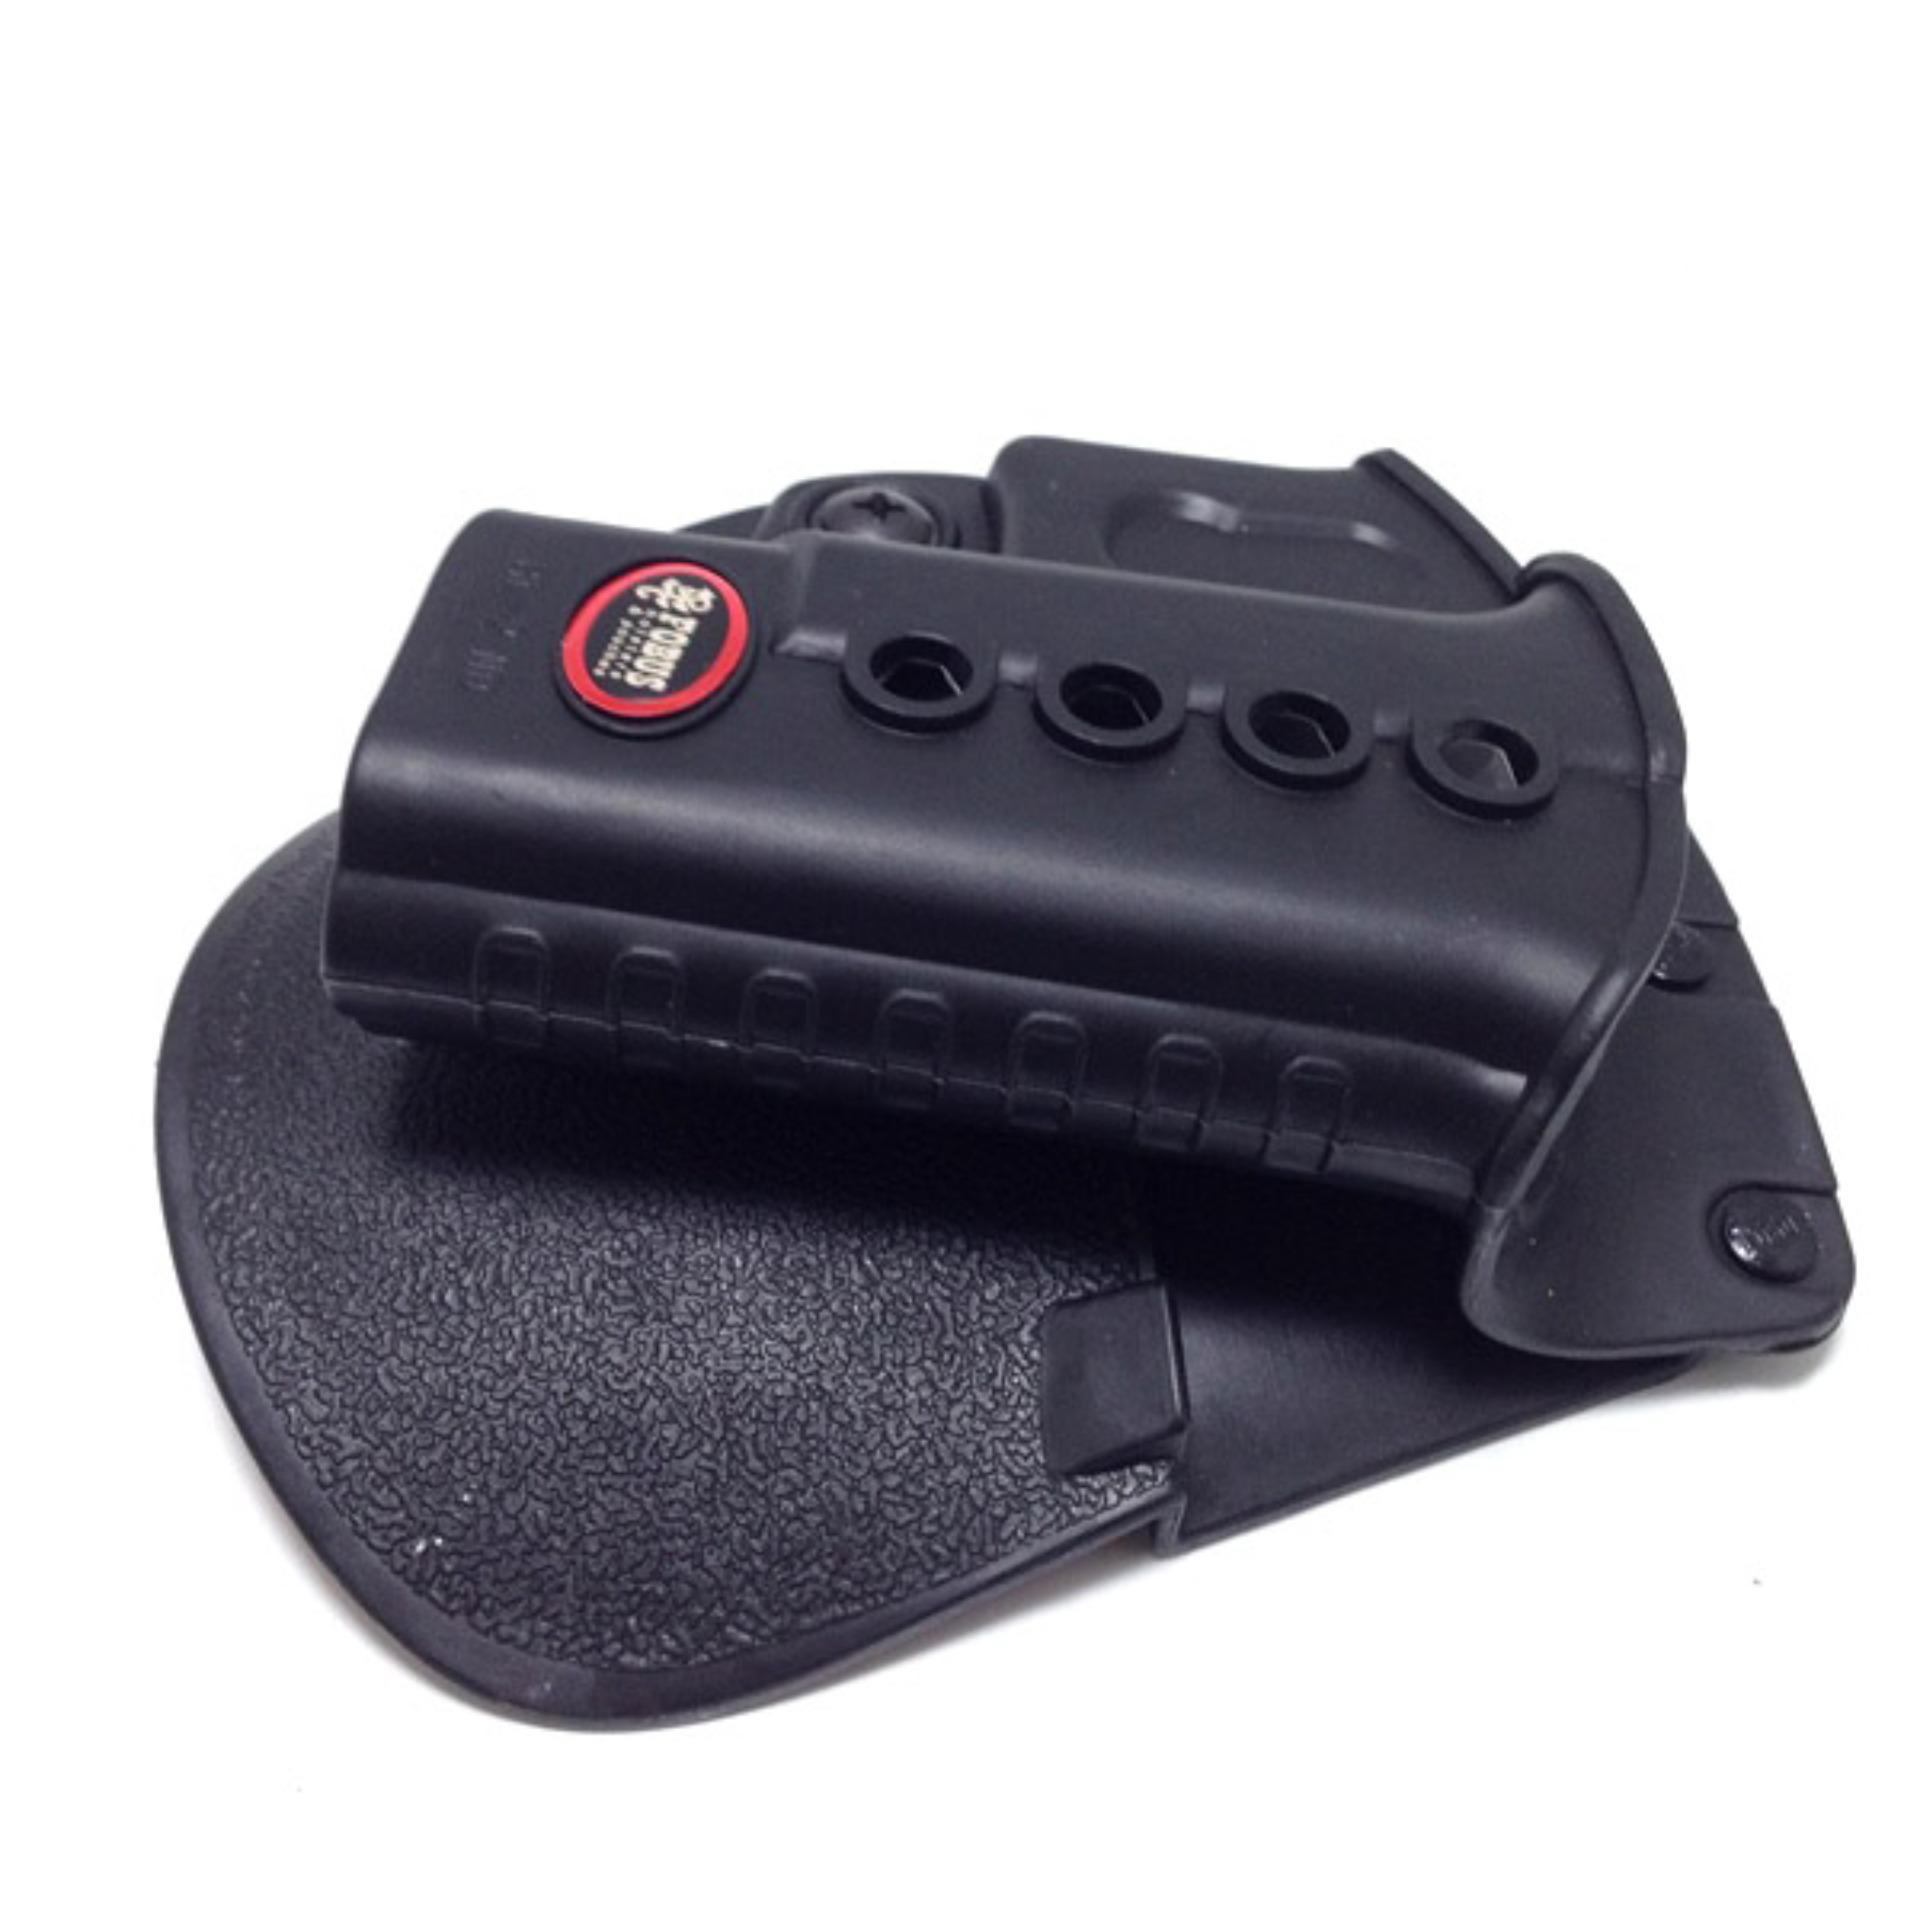 Armor Military Fobus Holster Sarung V1 Glock 2nd By Armor Military.